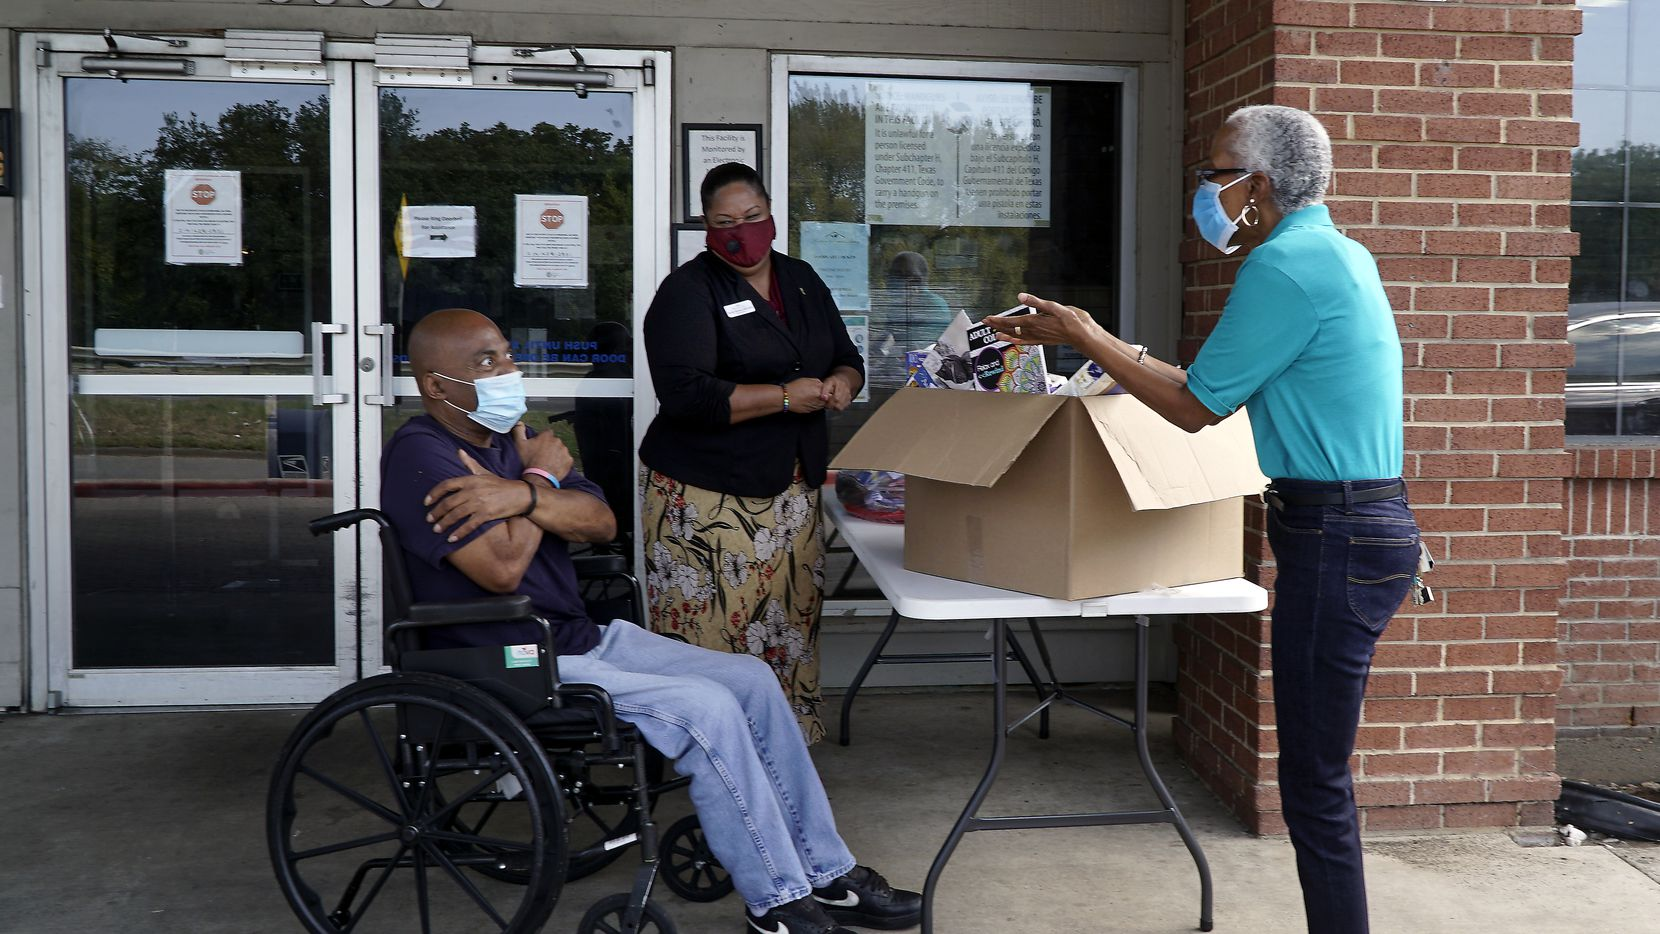 """Marsha Evans (right), Friendly Visitor Program manager for the Senior Source, shares a safe """"hug"""" with Modern Senior Living resident Willie Wilson (left) and administrator Monté Mitchell. Evans was delivering donations.."""